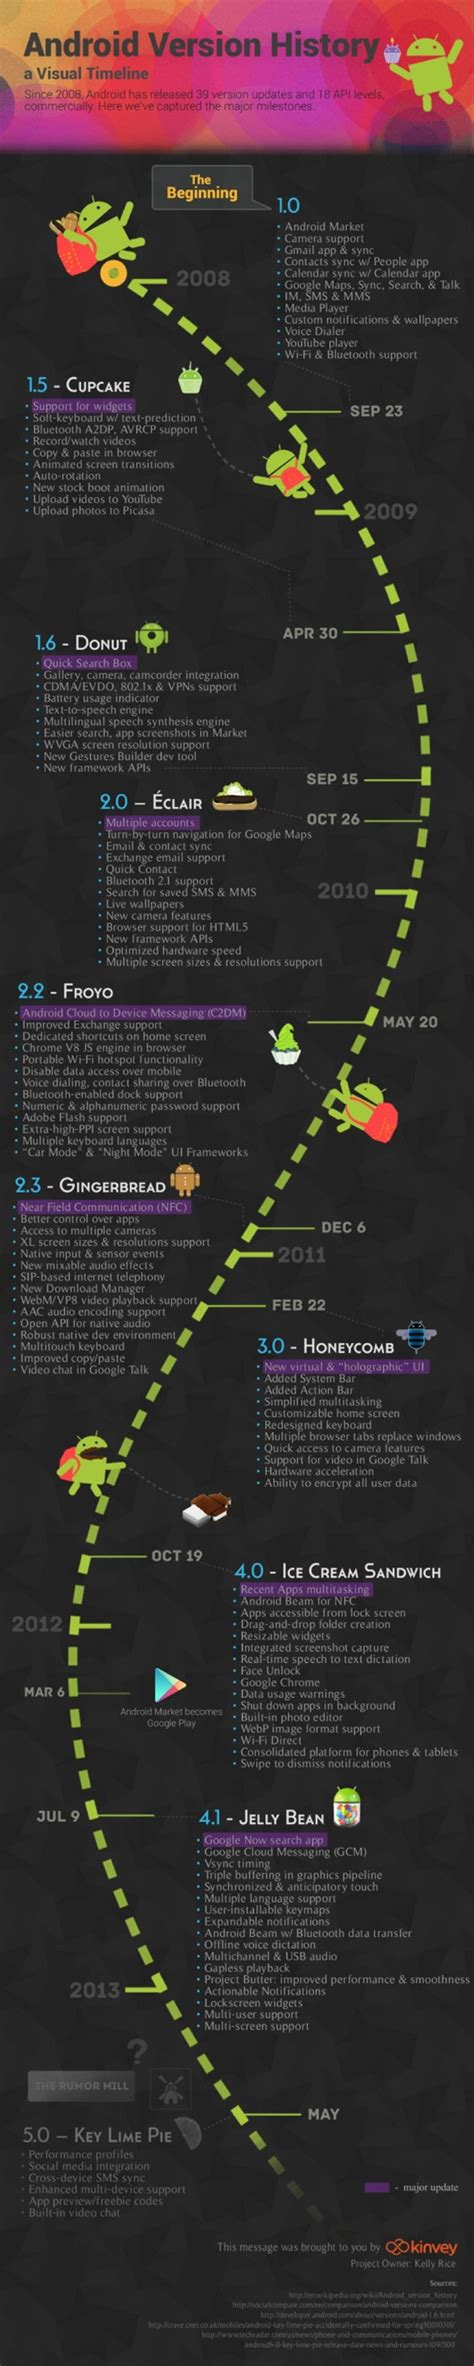 android version history android version history guide v1 0 to v4 1 jelly bean infographic redmond pie